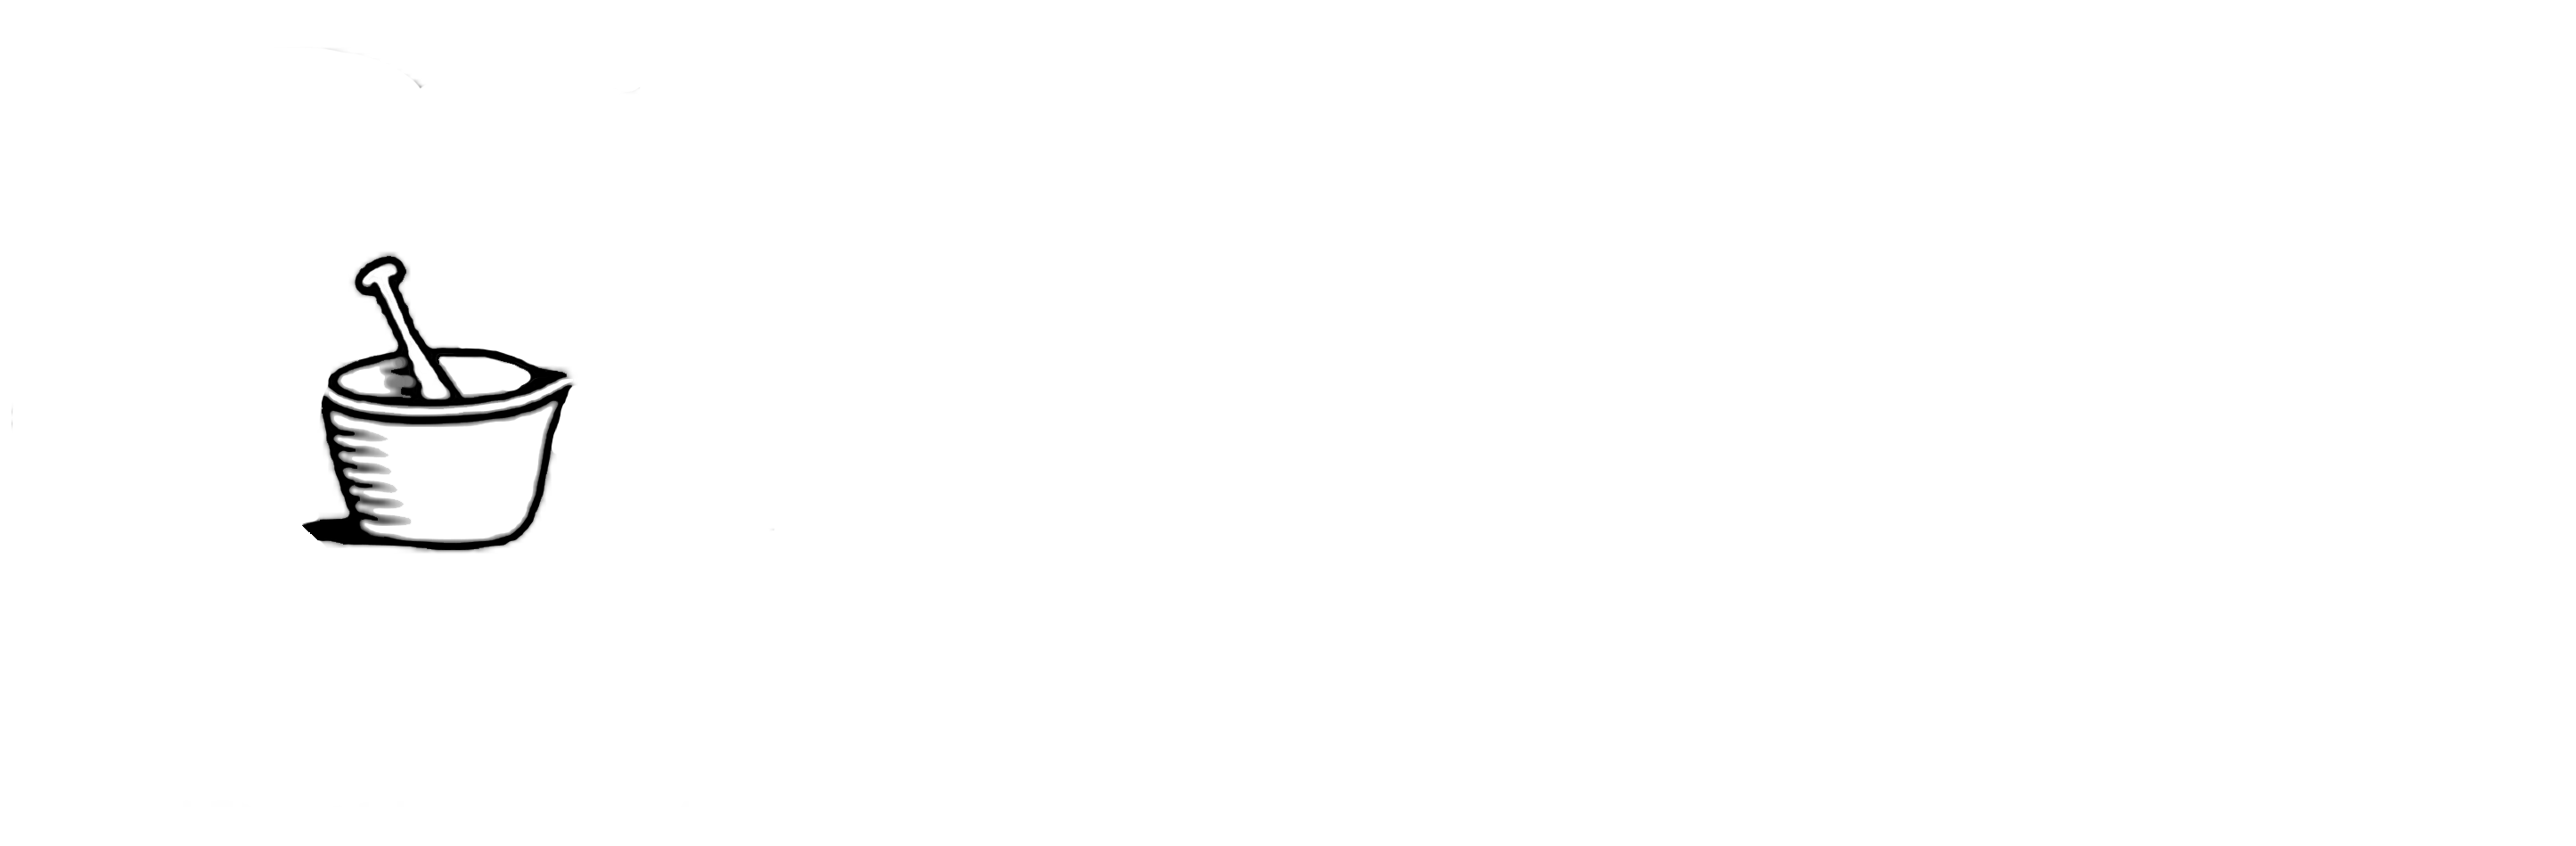 Wise Pharmacy